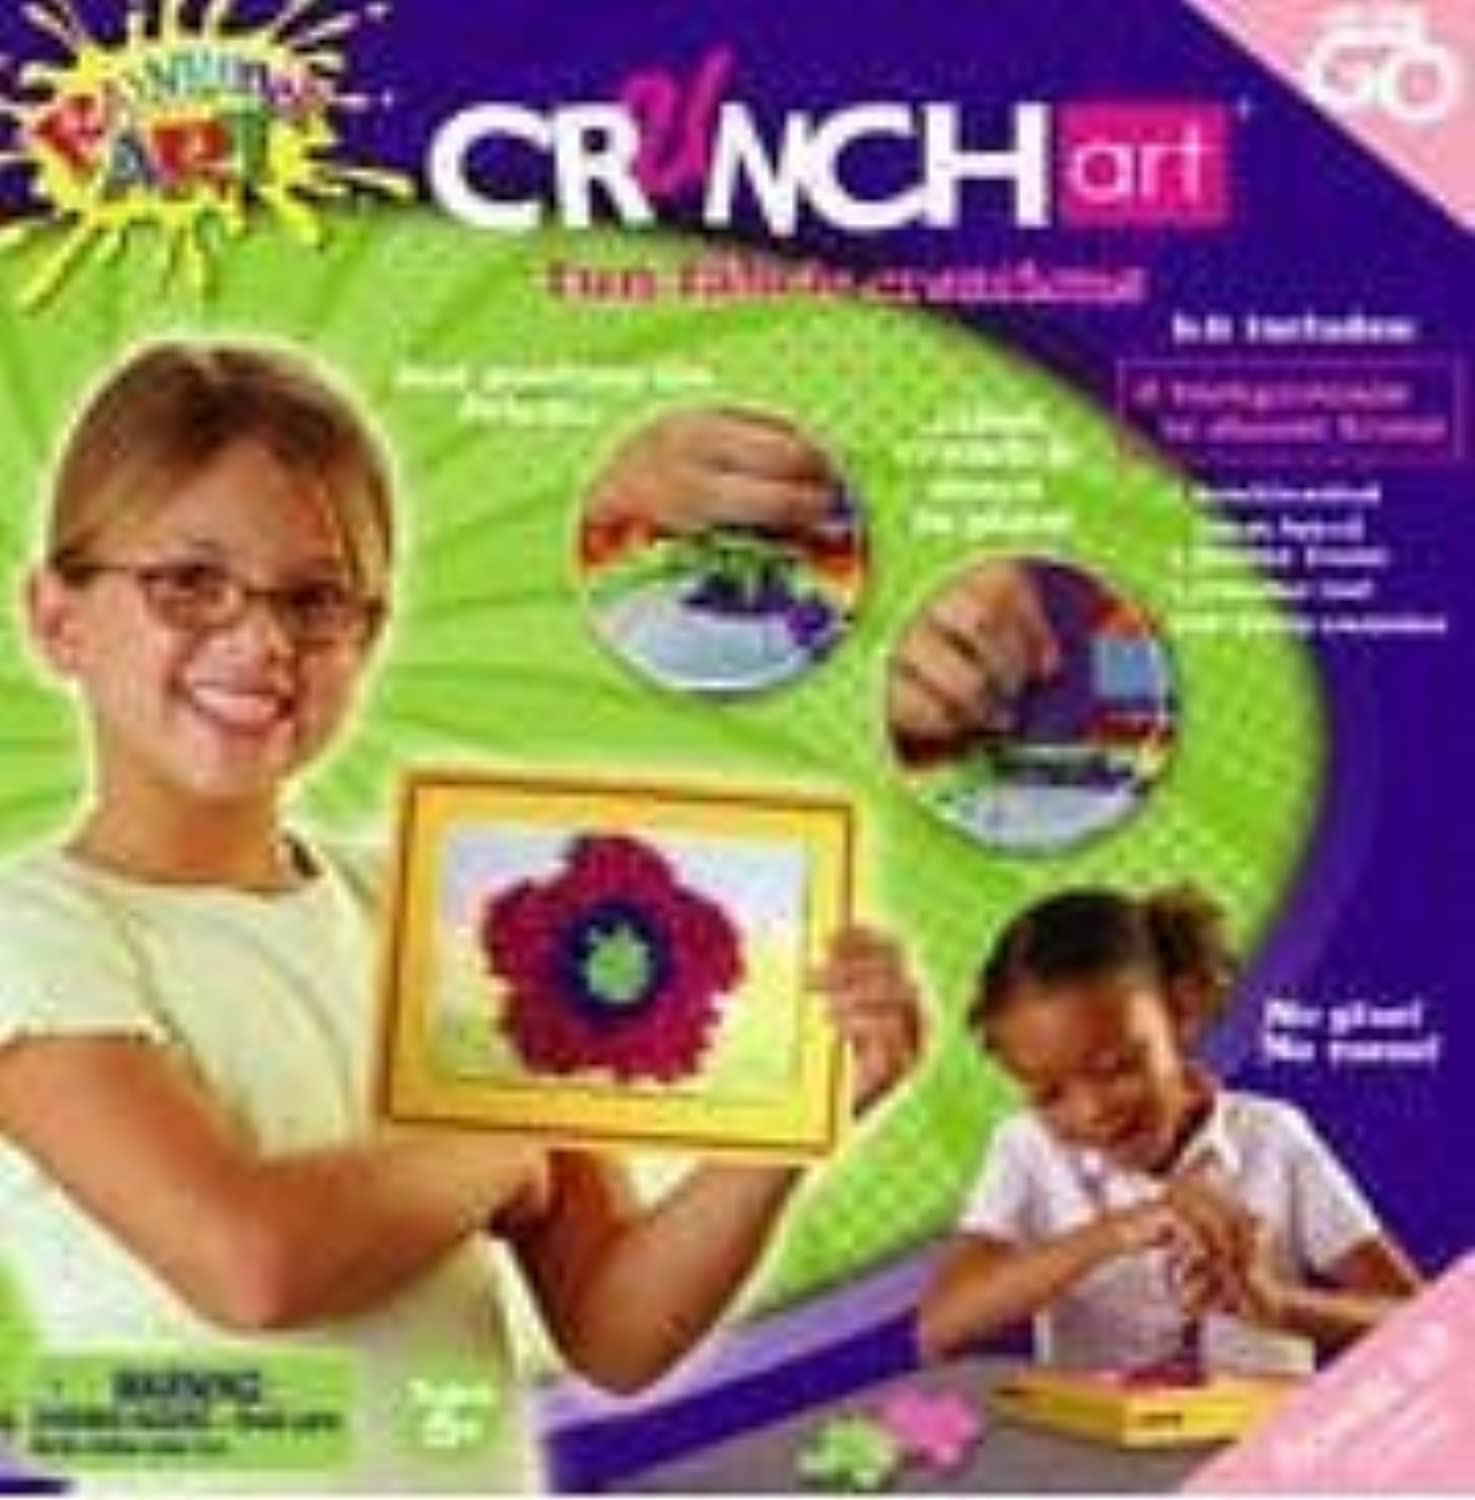 Ccorrerech Art divertimento Fabric Creations by Value Source Int'l.